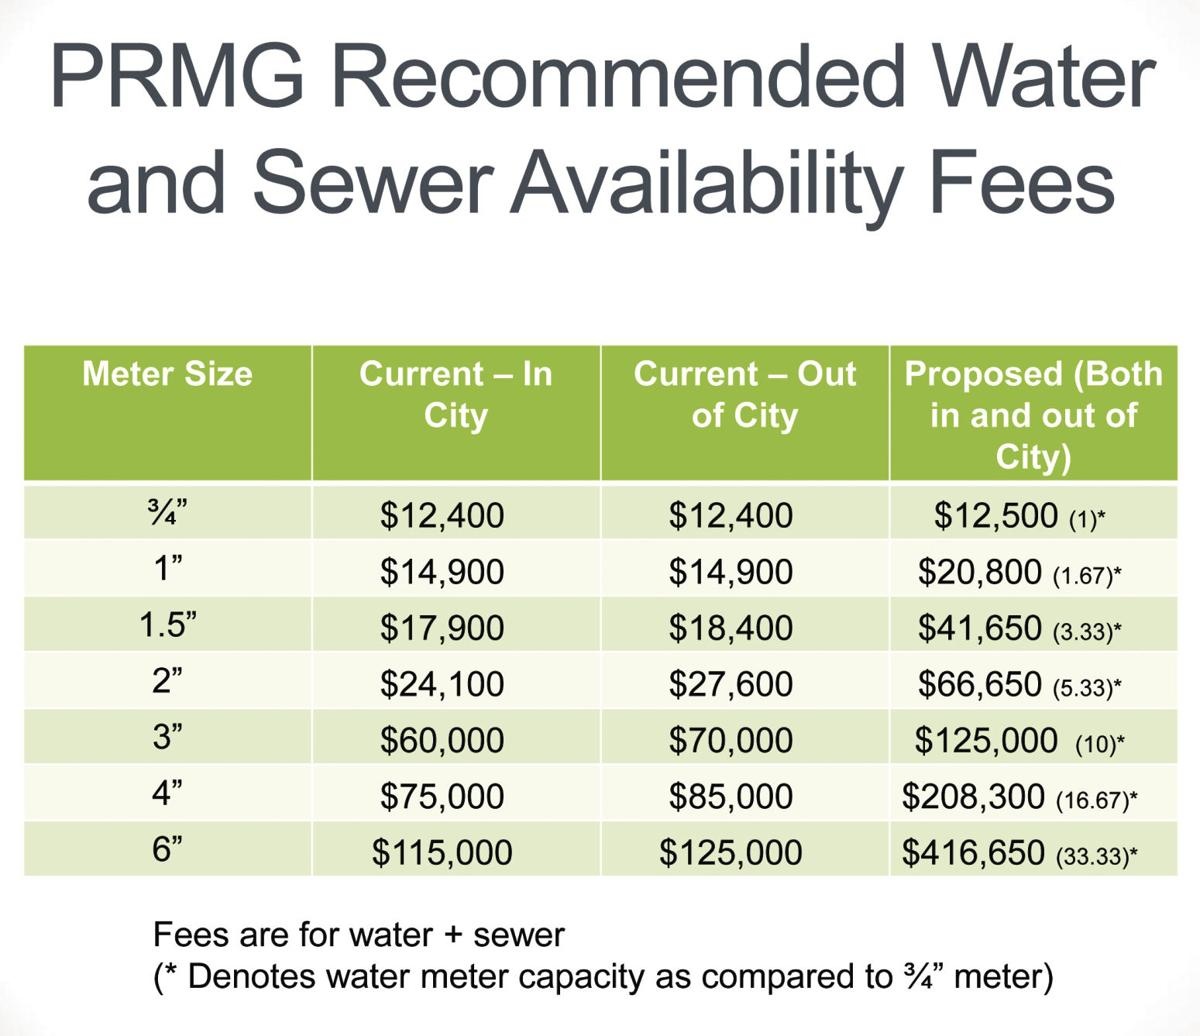 Recommended Water and Sewer Availability Fees